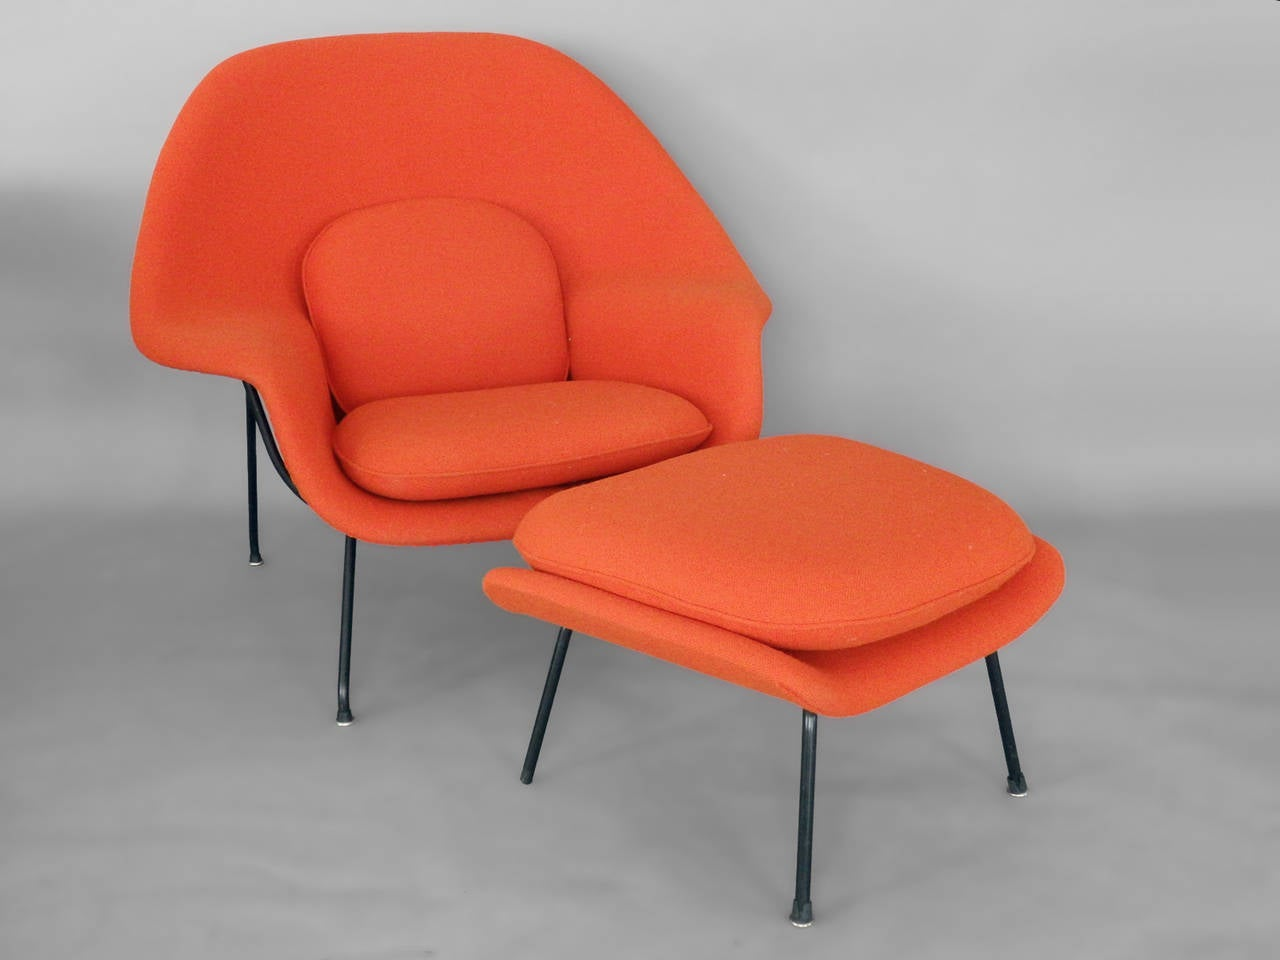 saarinen for knoll womb chair with ottoman for sale at 1stdibs